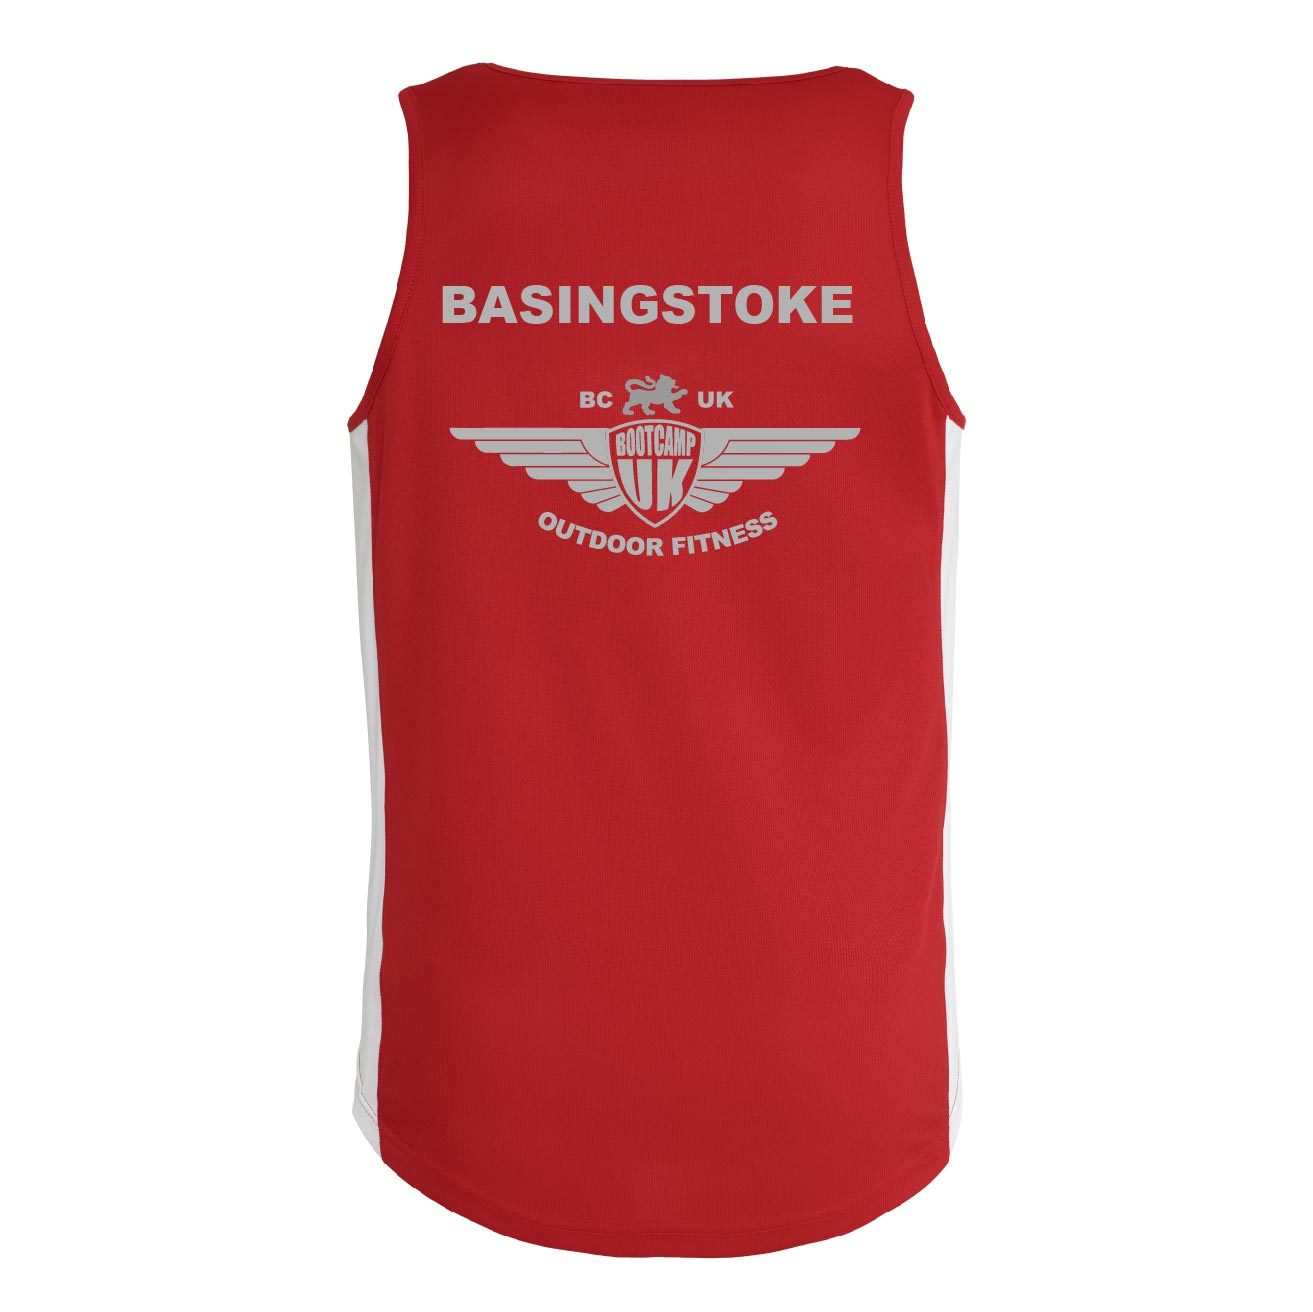 Medium Basingstoke Mens Vest